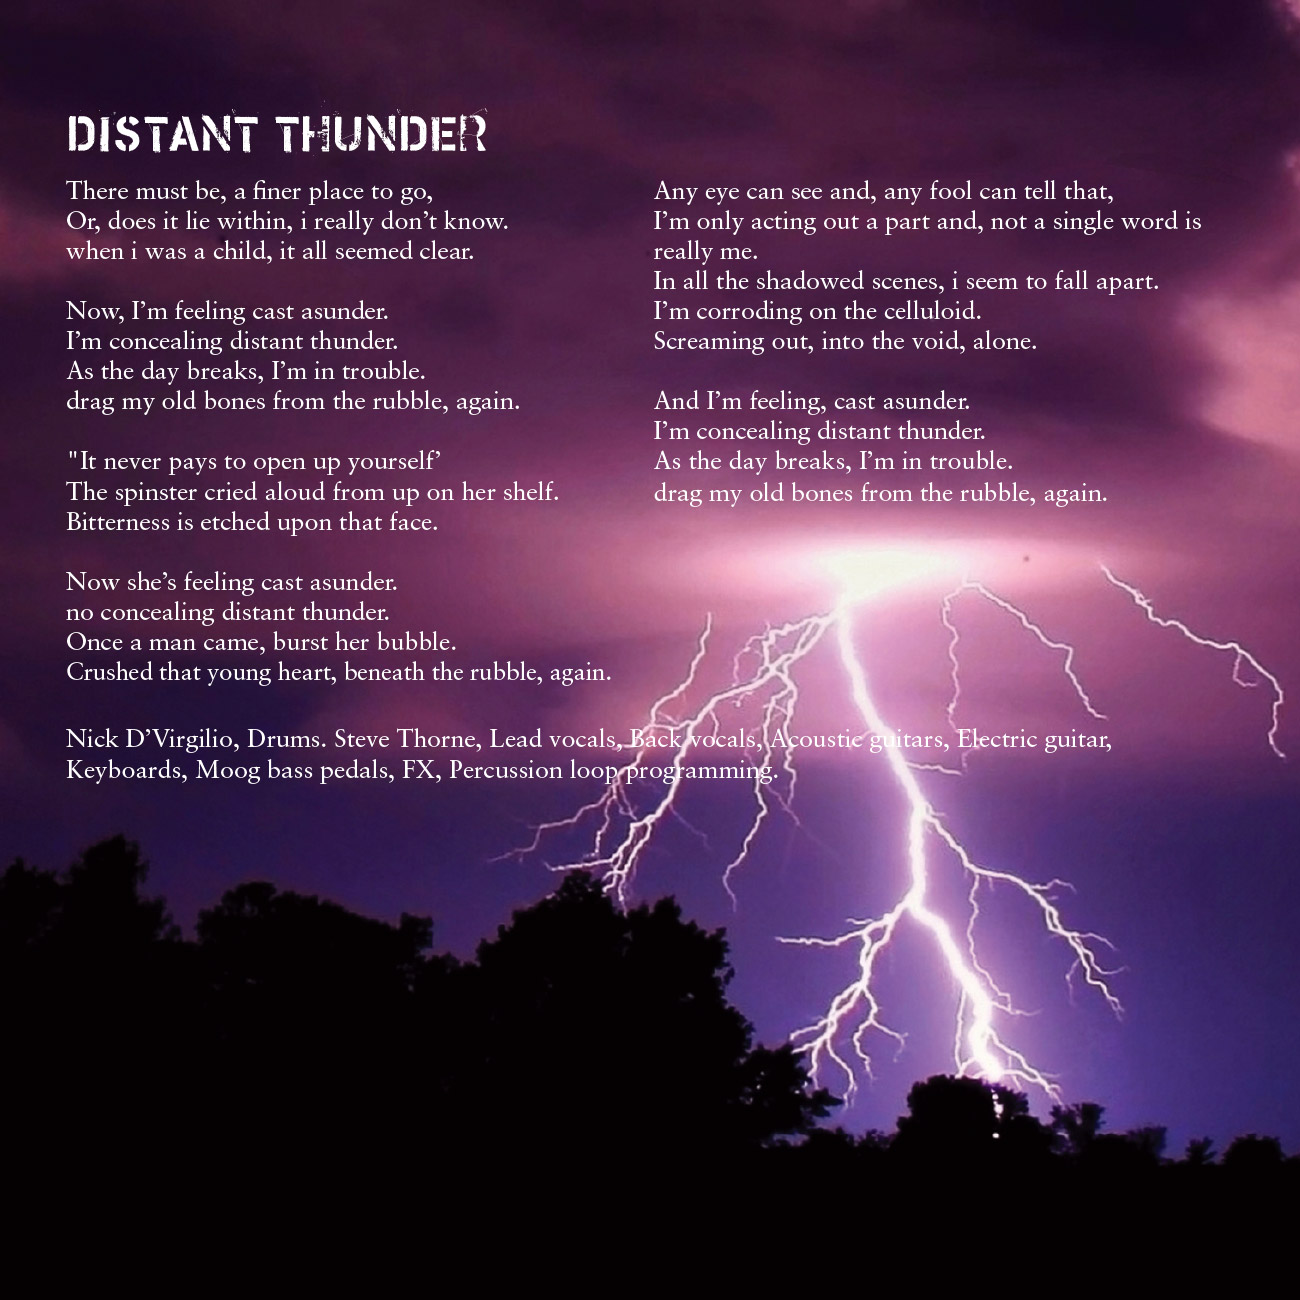 10 - Distant Thunder